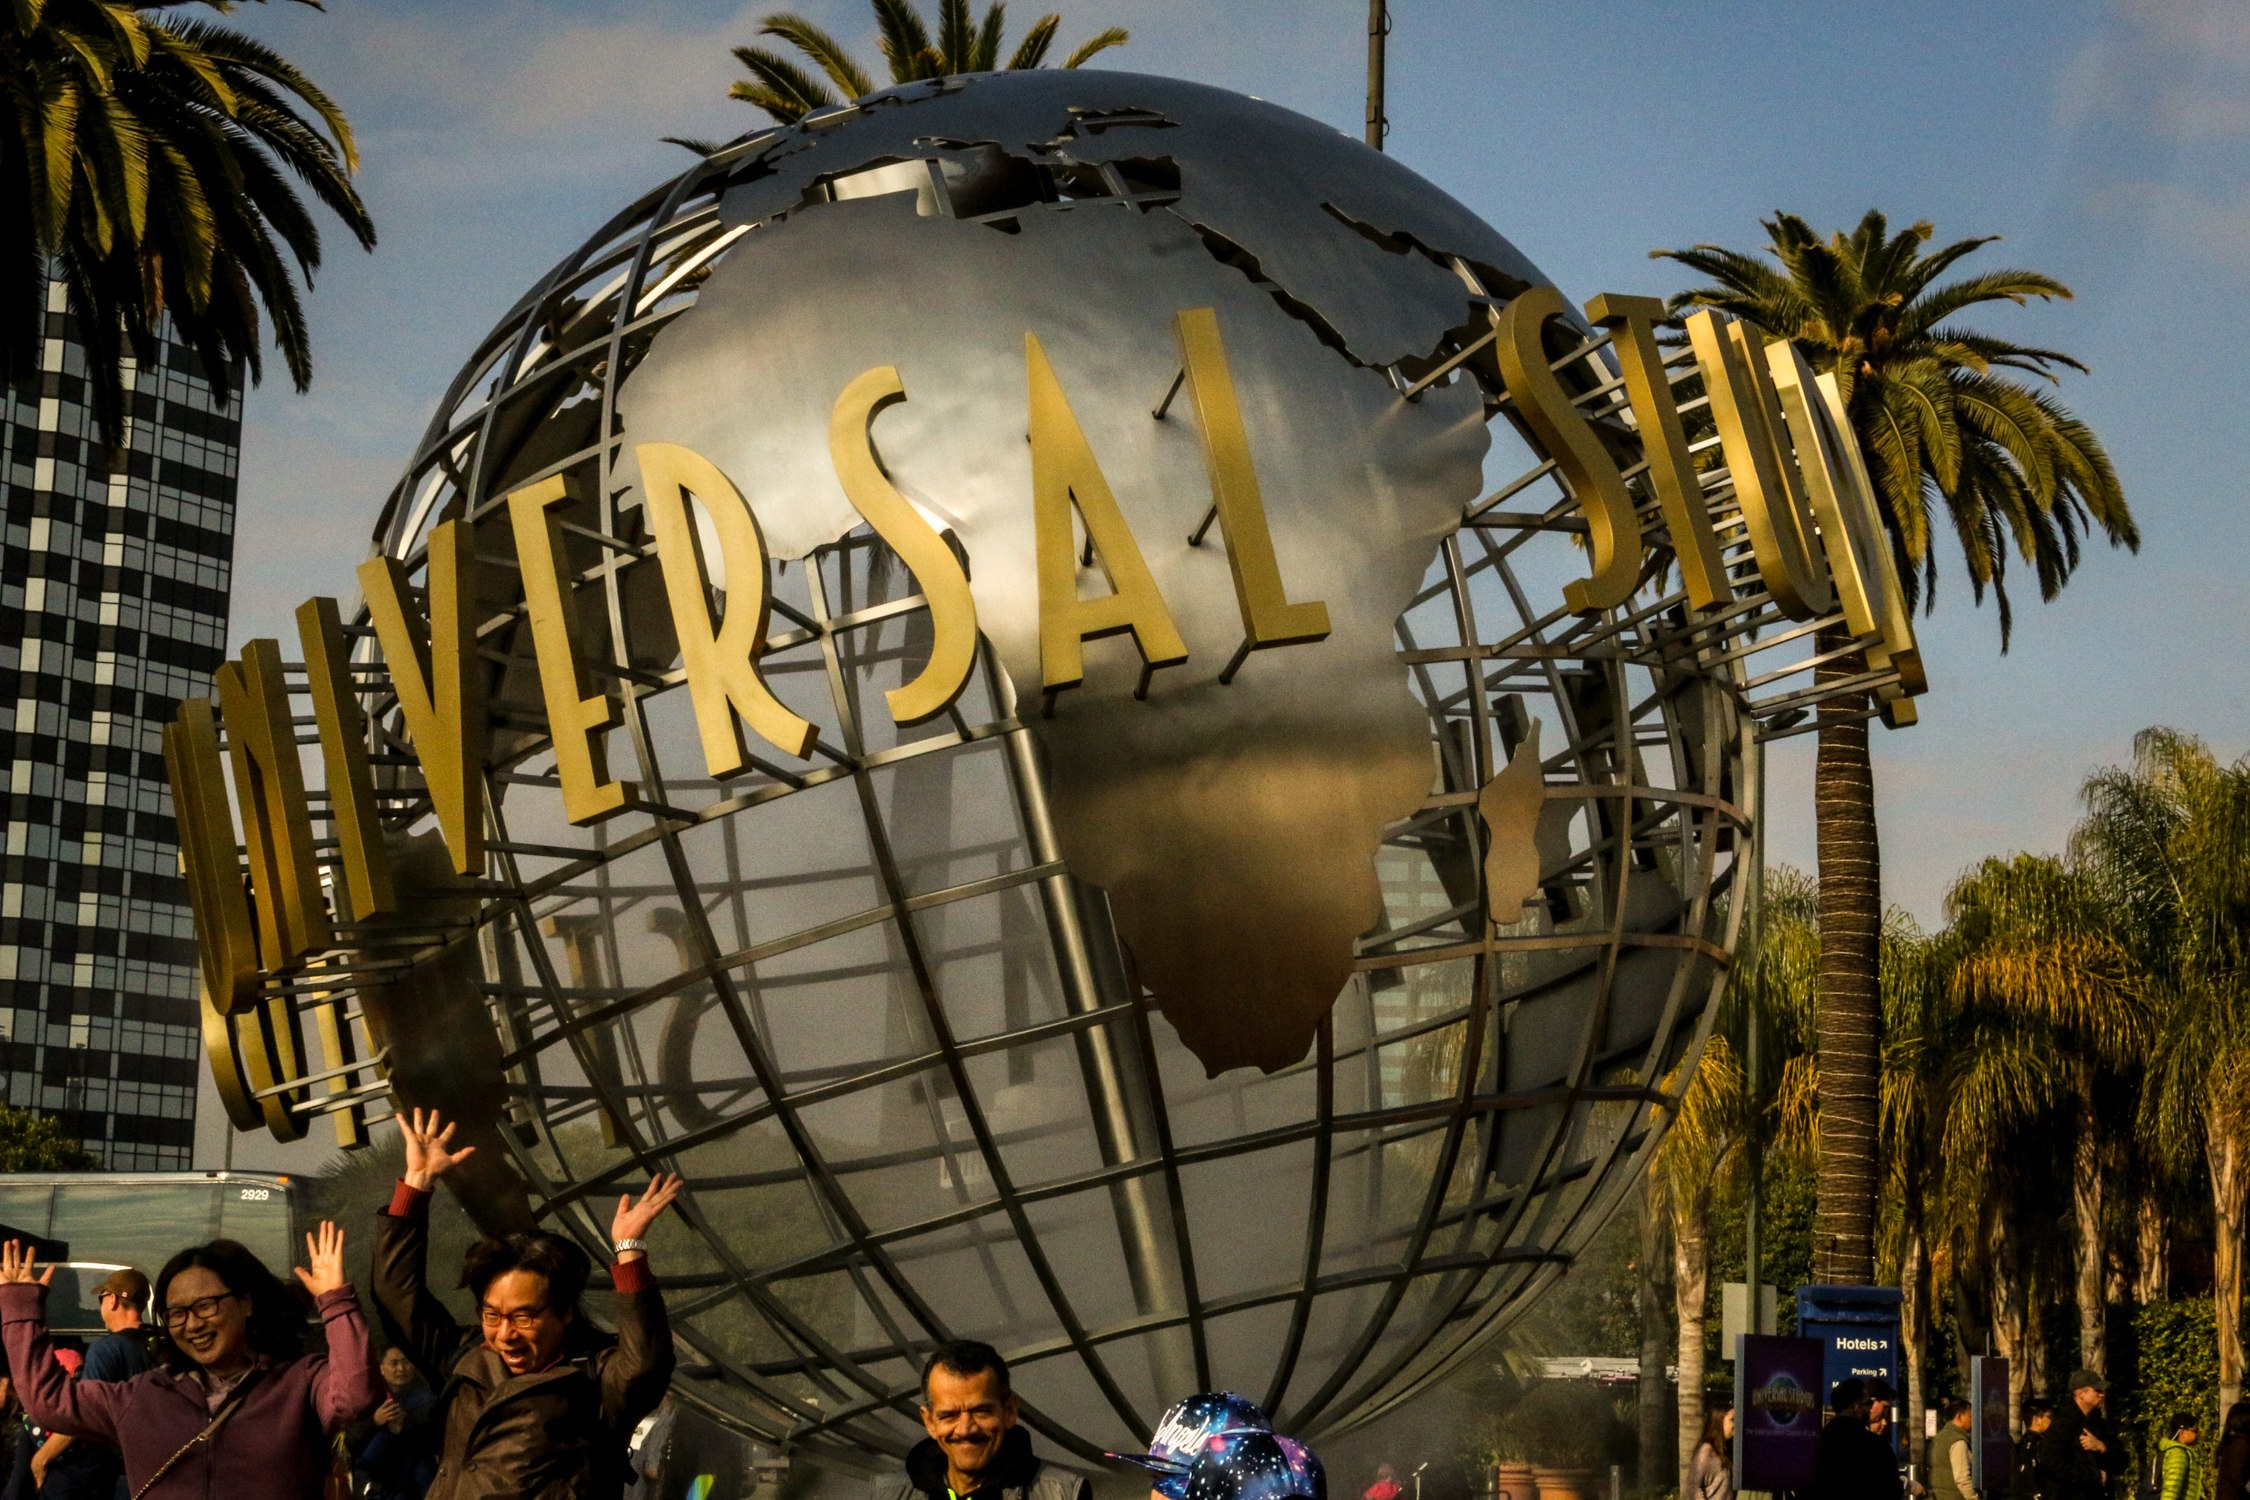 Demand pricing: what it means for Universal Hollywood vacation planning